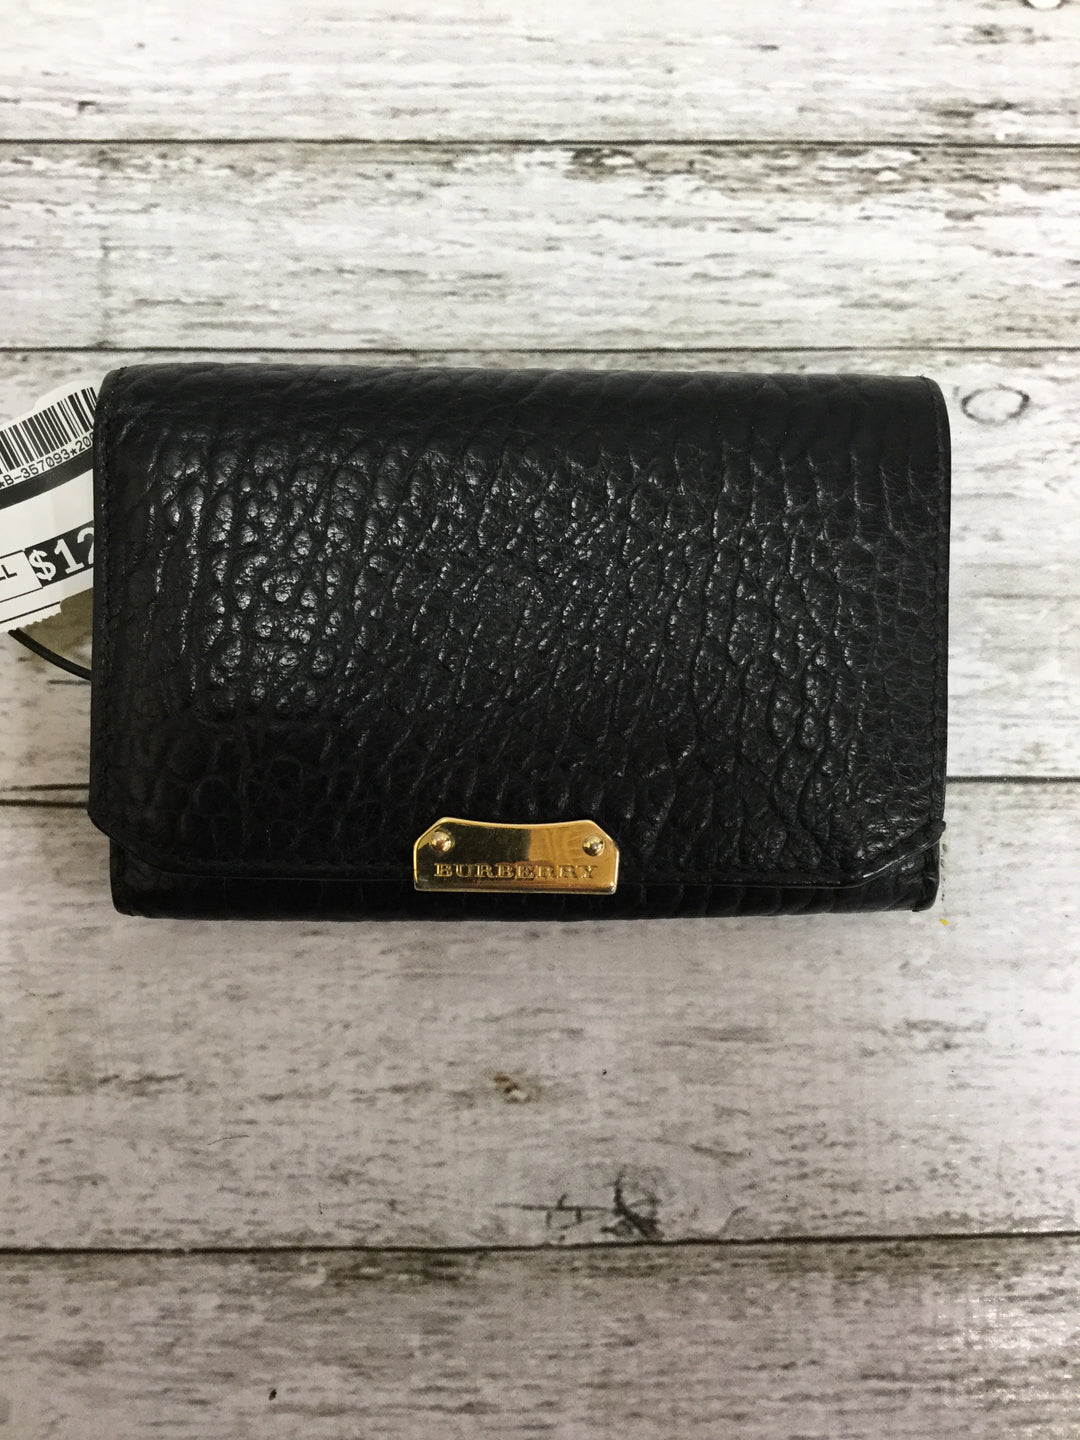 Primary Photo - <P>BRAND: BURBERRY , STYLE: WALLET , COLOR: BLACK , SIZE: SMALL , SKU: 127-4942-2331</P> <P>THIS BURBERRY WALLET IS VERY GENTLY USED AND IN GREAT CONDITION. IT HAS SEVERAL CARD SLOTS AND SPACE FOR BOTH CHANGE AND CASH. </P>